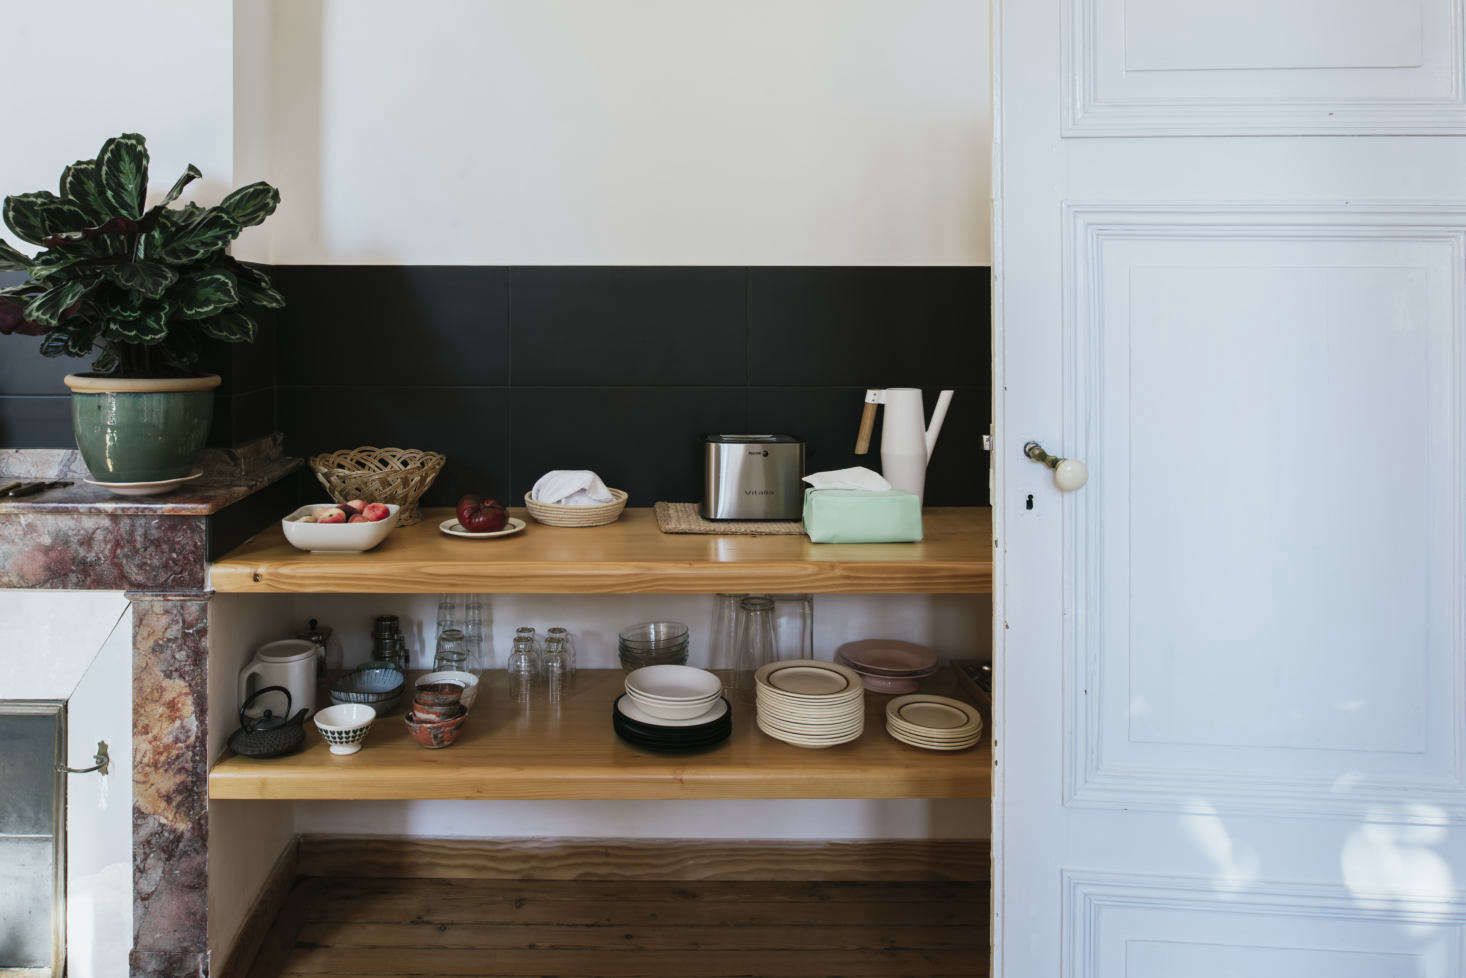 """On display are Sathal's collections. """"These are dishes that I find mostly in flea markets, and when my boyfriend travels, he brings me back finds from different countries,"""" she says. """"I find tea towels in the vide-greniersand I also make linens."""" The low black backsplash is made of Italian tiles."""